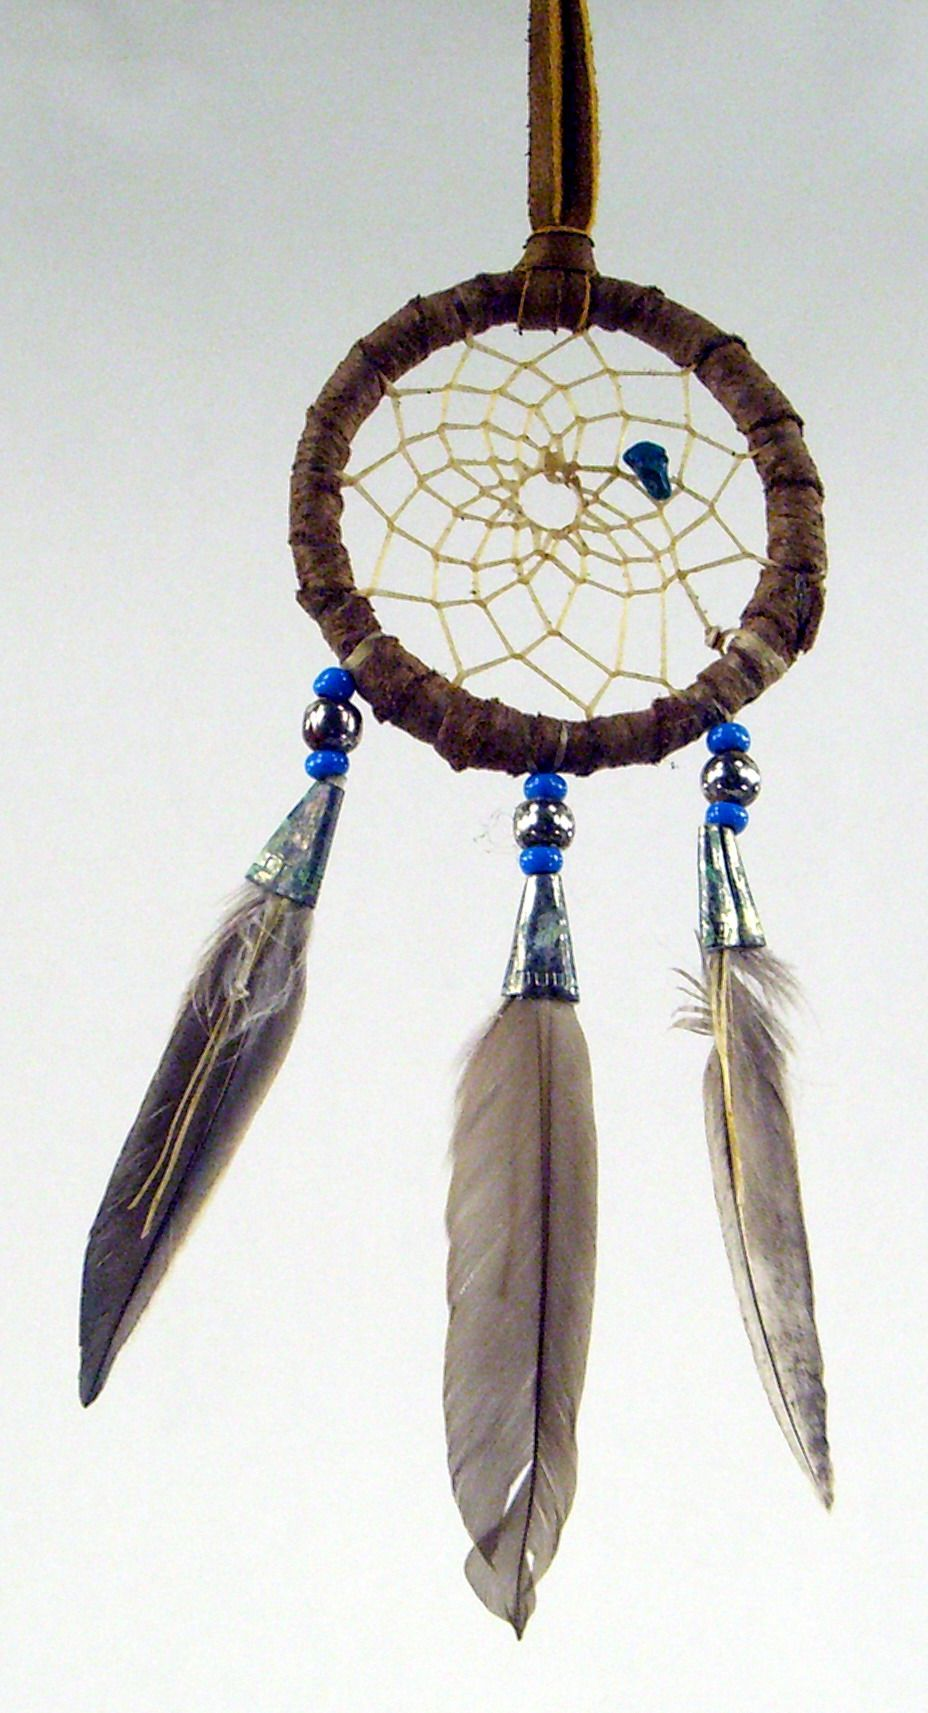 Cherokee Dream Catcher Classy Native American Indian Dream Catchers  Item Personalization  Catch Review